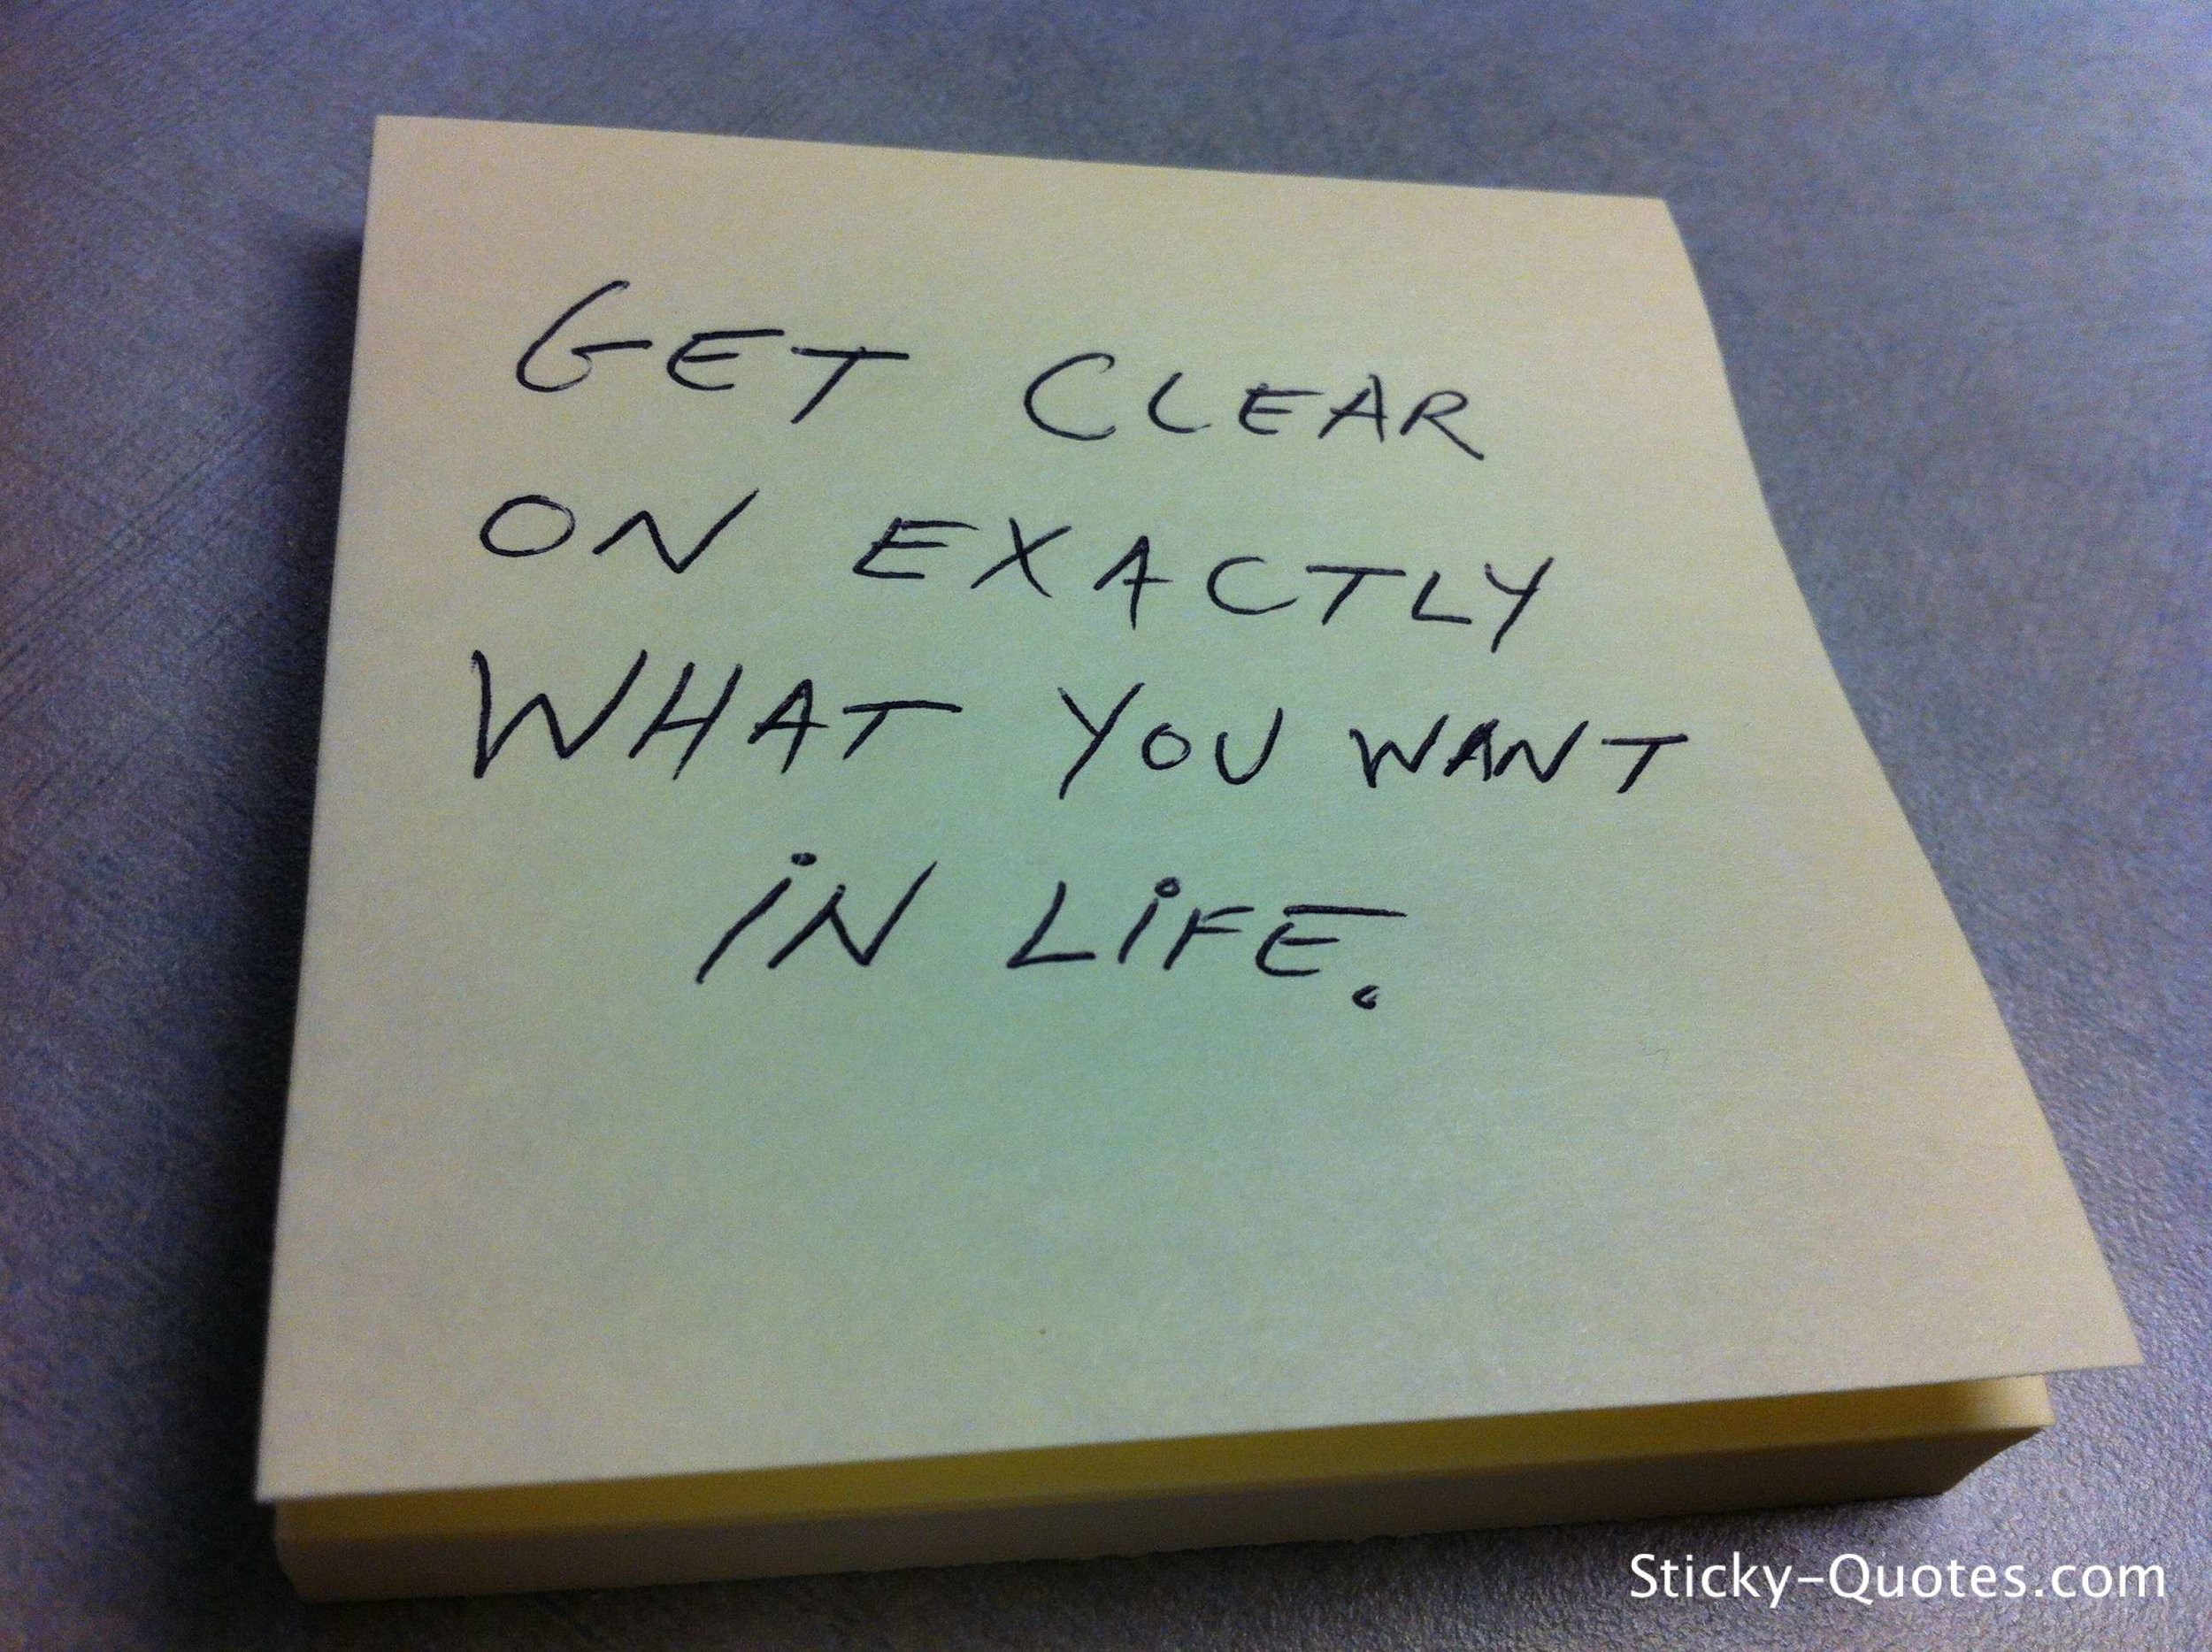 sticky-quotes_091012_get-clear-on-exactly-what-you-want-in-lifewtmk.jpg